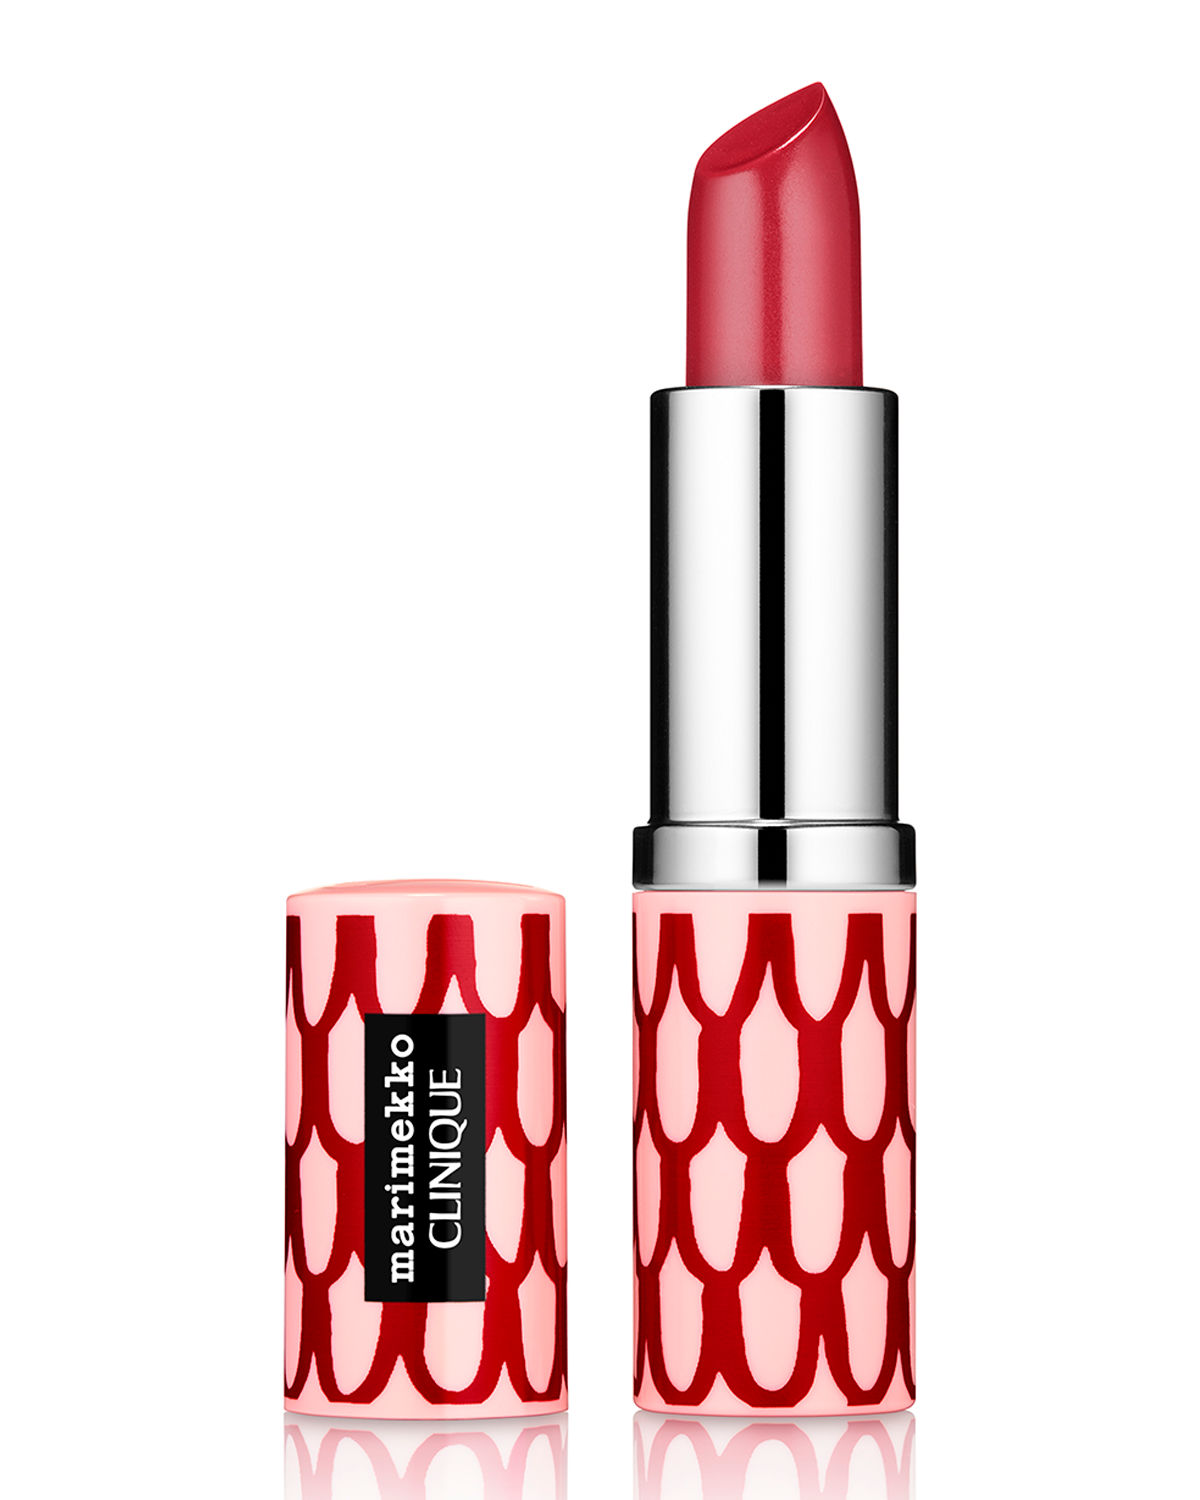 Marimekko Pop Lip Colour + Primer